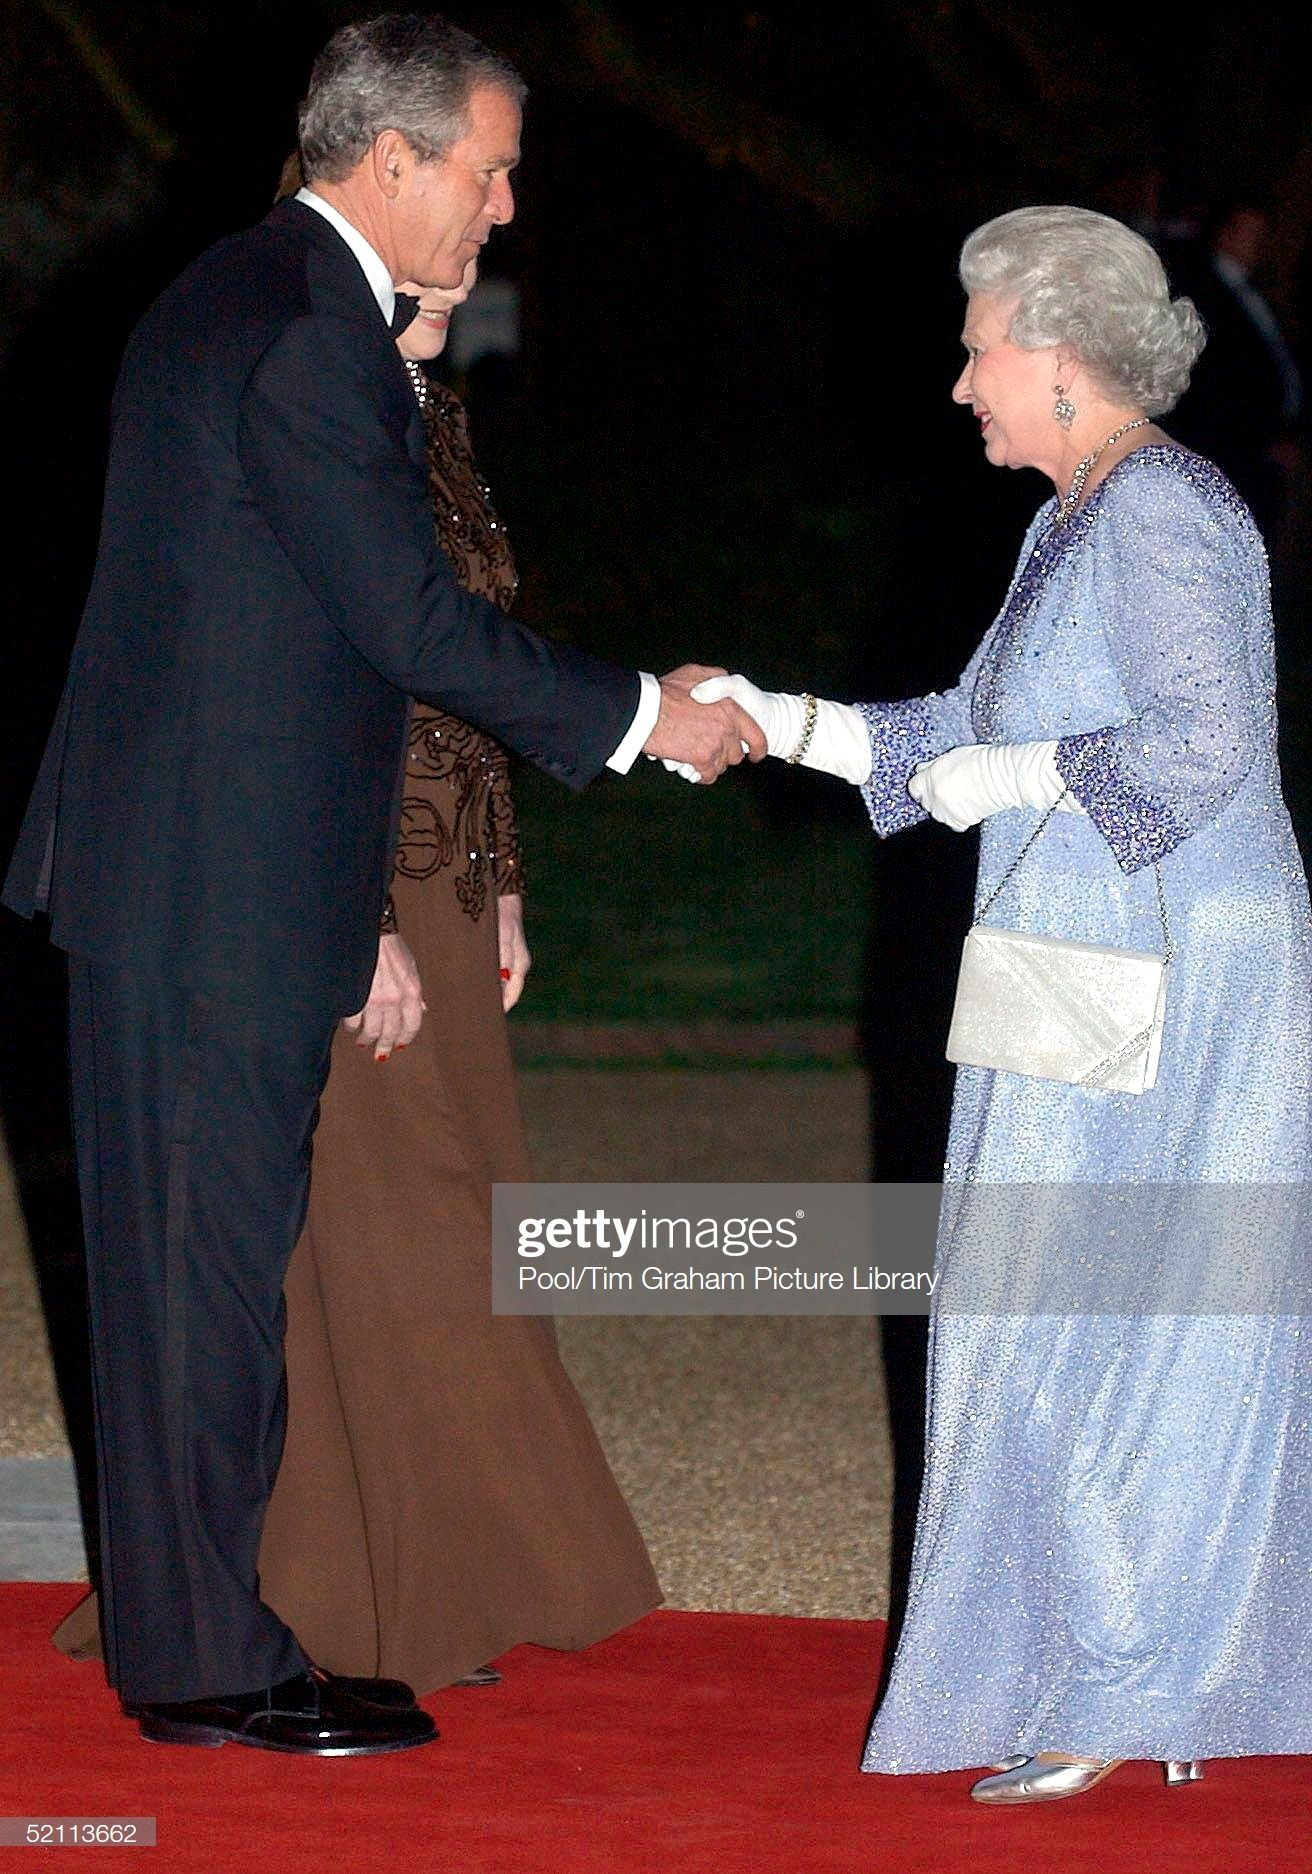 President George W Bush Hosts A Banquet For Queen Elizabeth II And Other Royals At The American Amba... - #banquet #elizabeth #george #hosts #other #president #queen - #QueenElizabeth